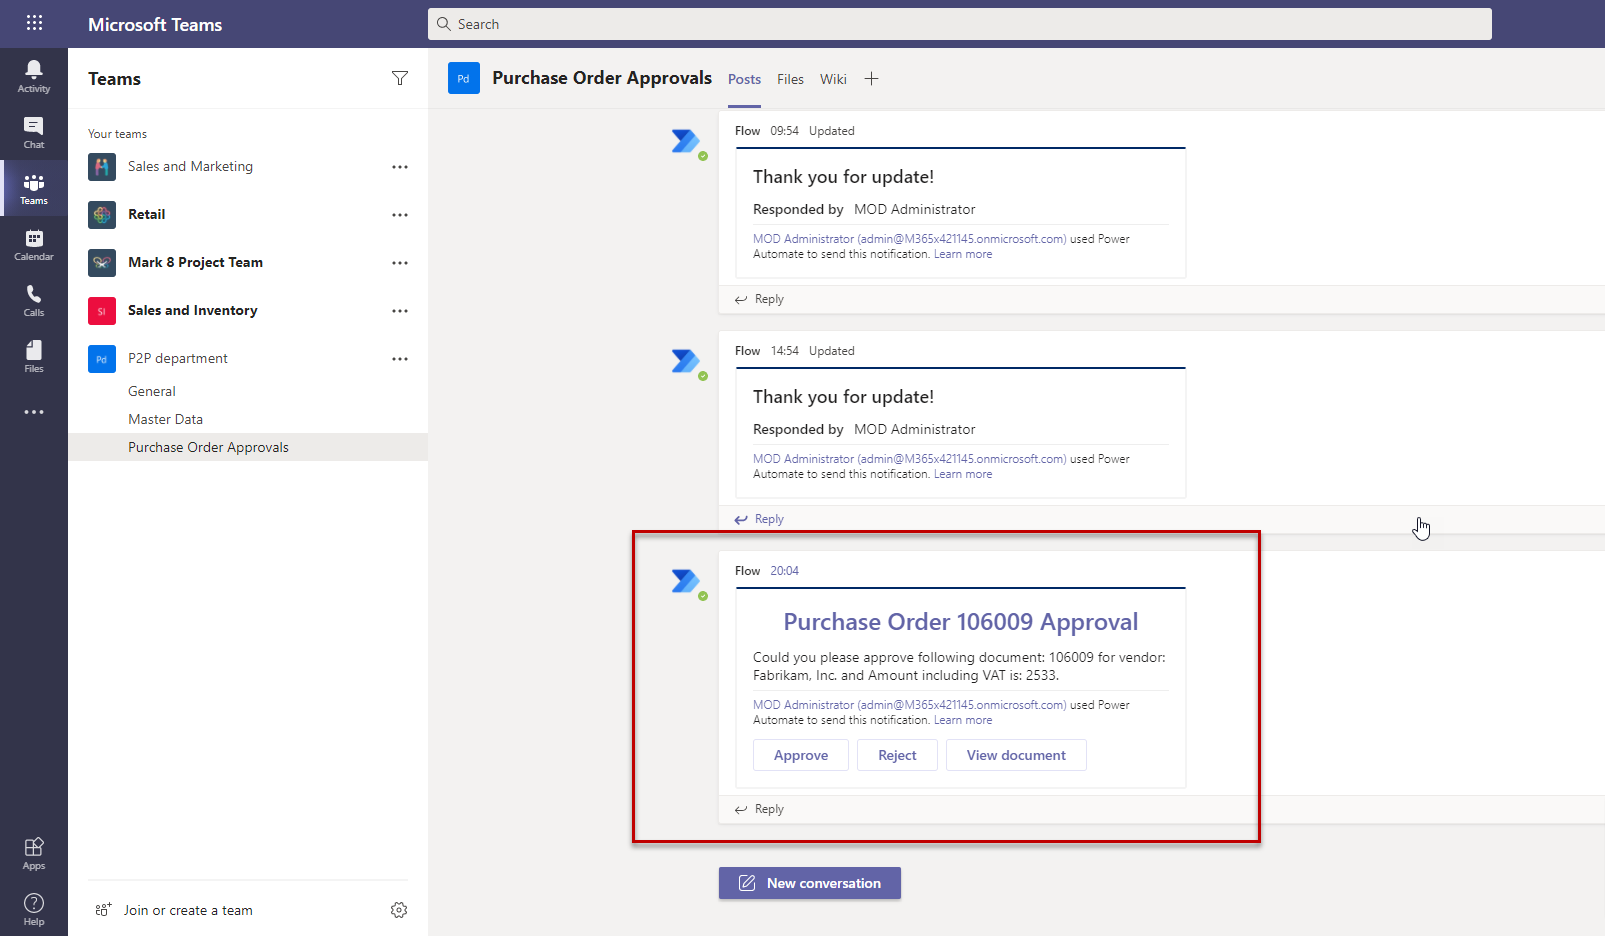 How to use MS Teams for Dynamics 365 Business Central approval